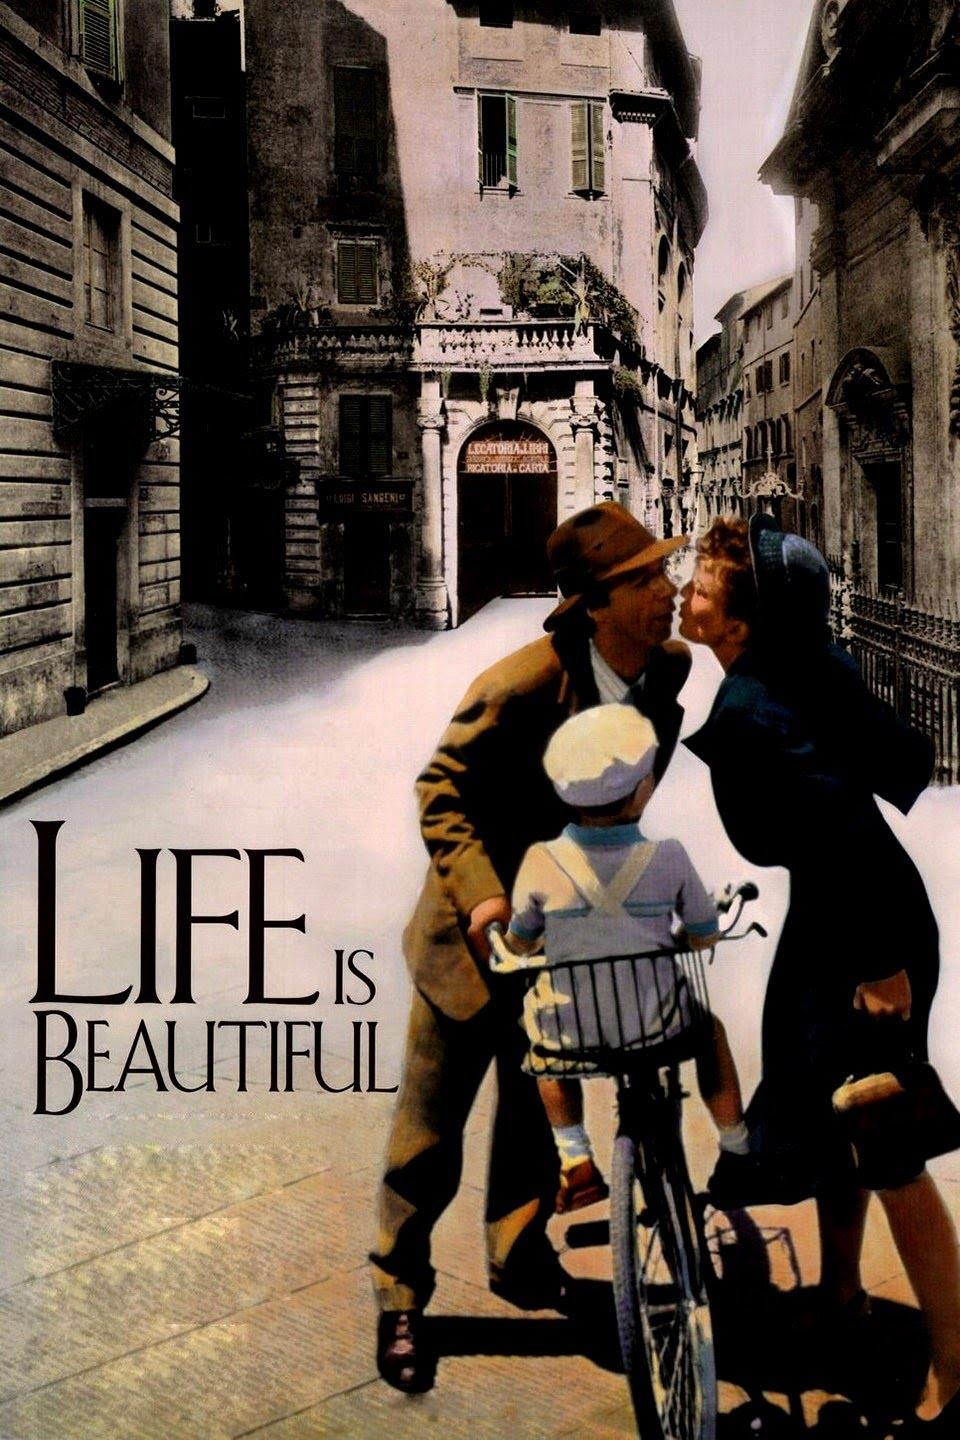 Image of the Life is Beautiful film cover